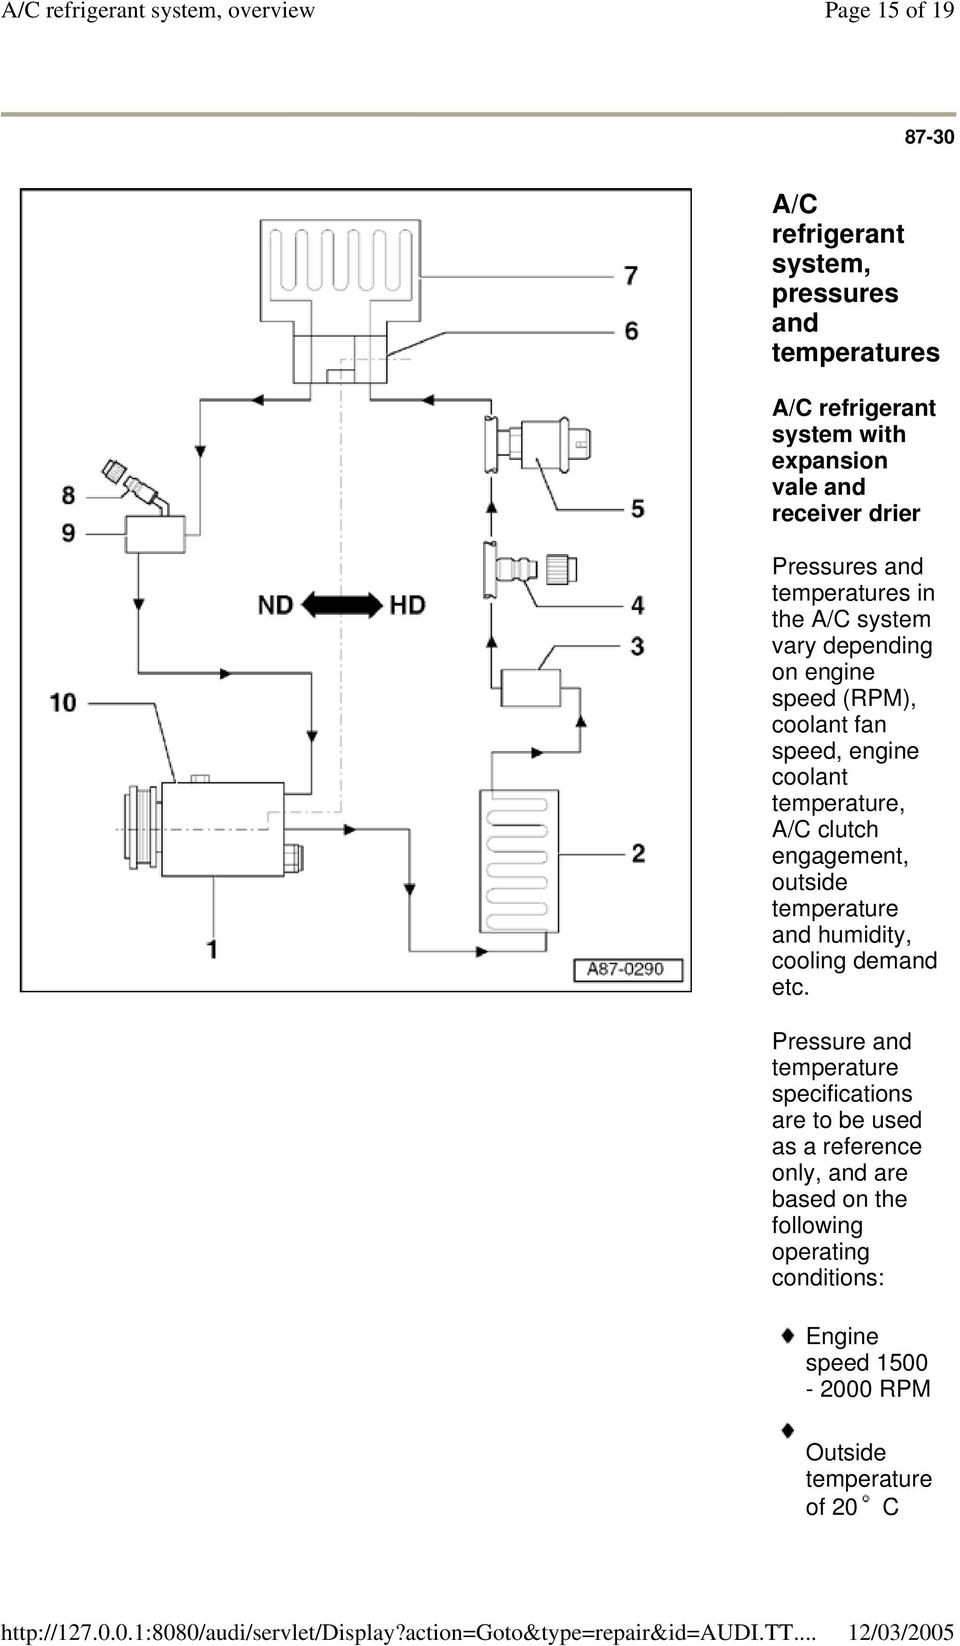 A C Refrigerant System Overview Pdf Further Pressor Clutch On Chevy Ac Compressor Wiring Diagram Temperature Engagement Outside And Humidity Cooling Demand Etc